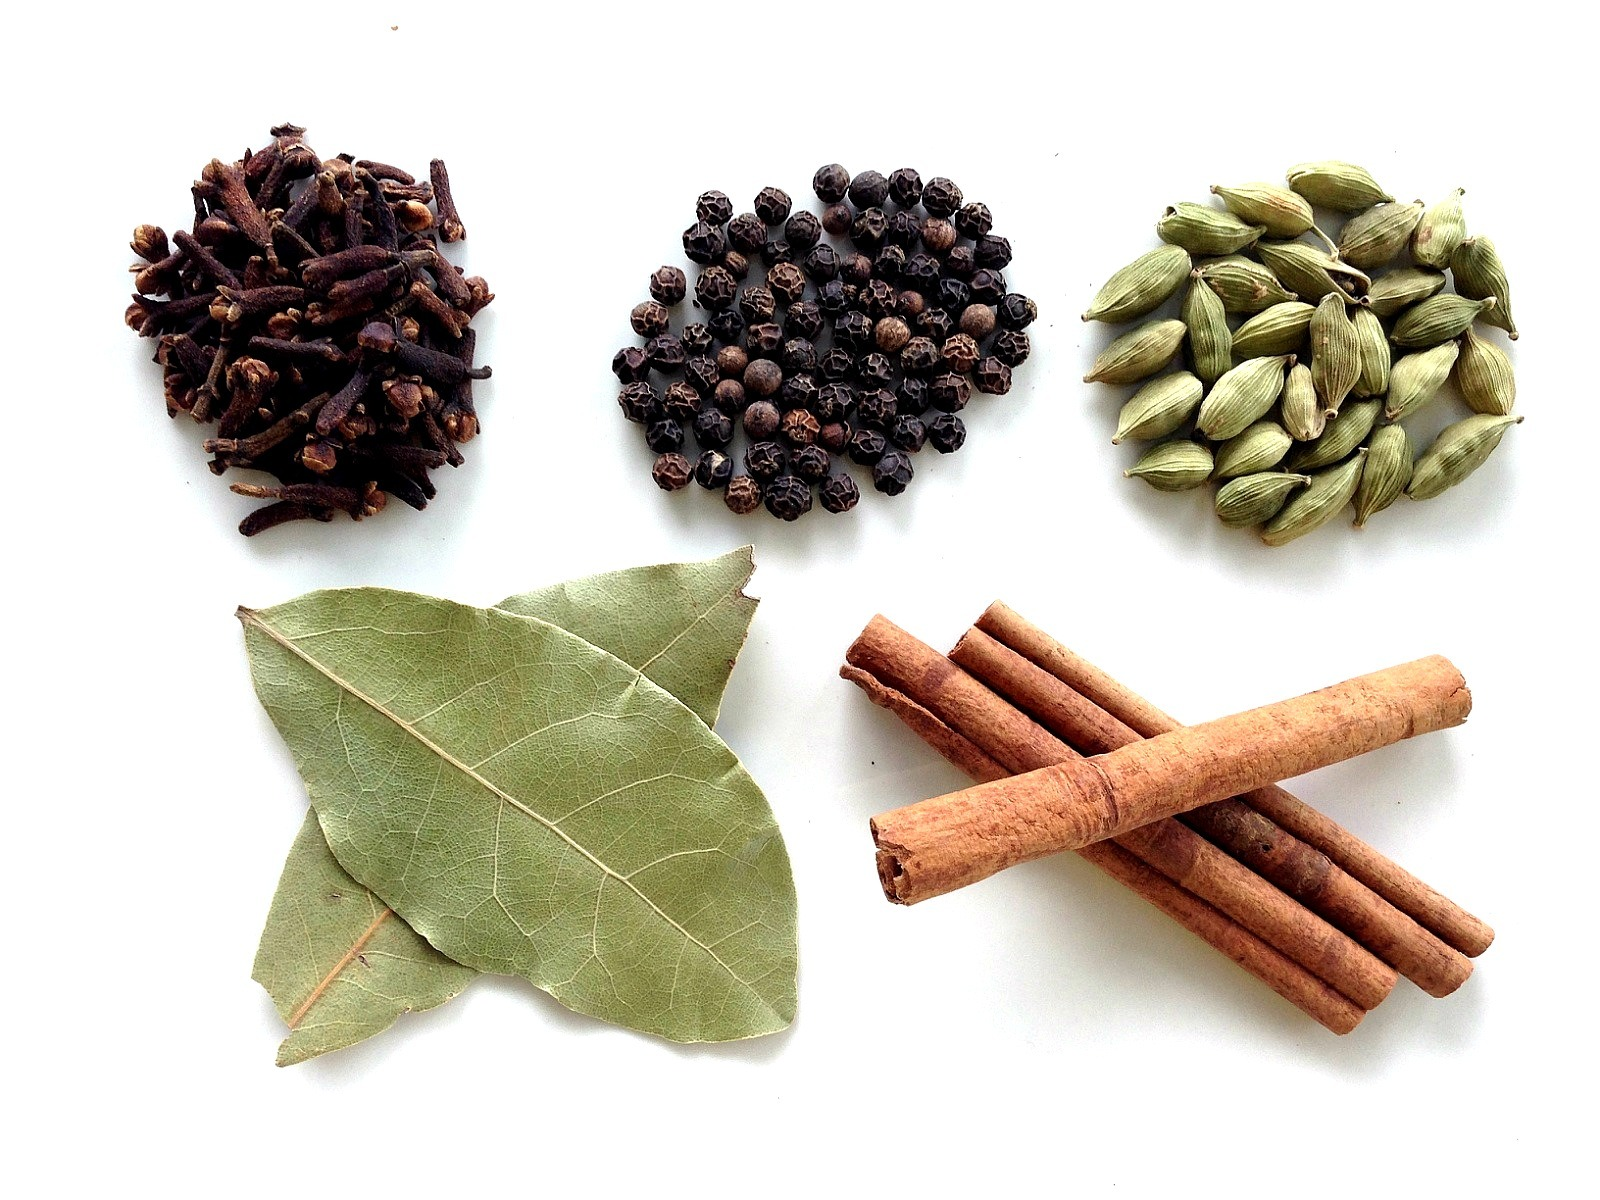 Ingredients in Garam Masala